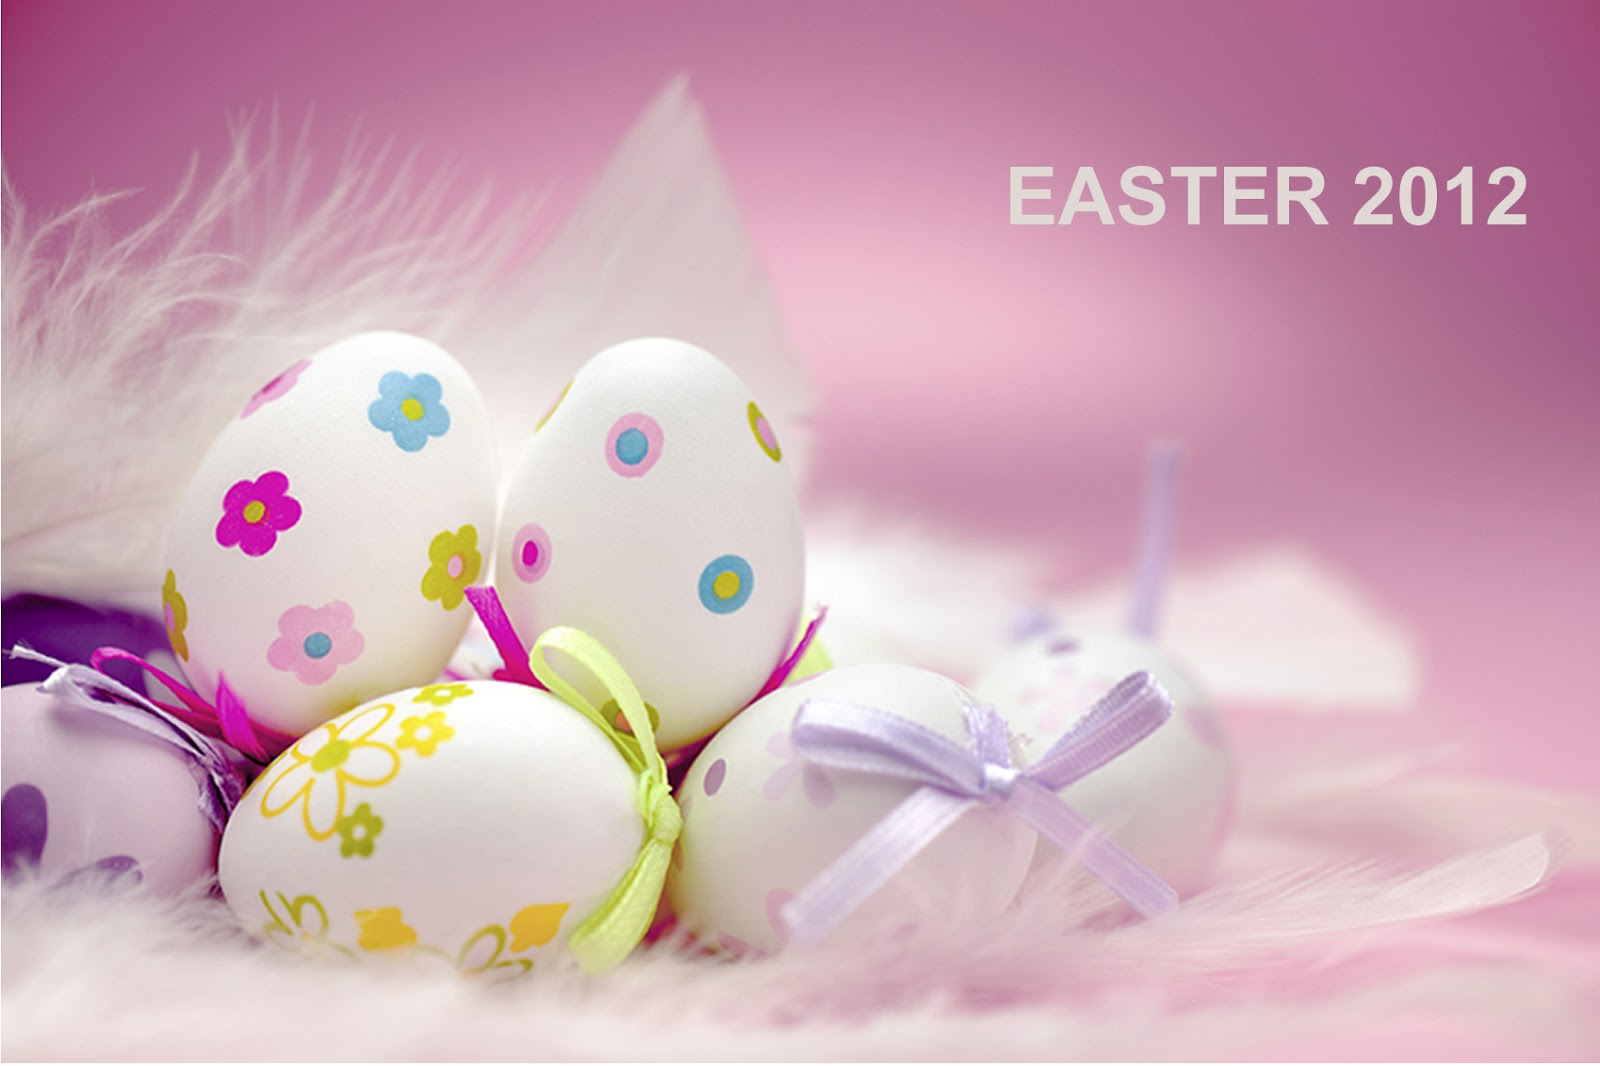 How the Easter Date is Determined?